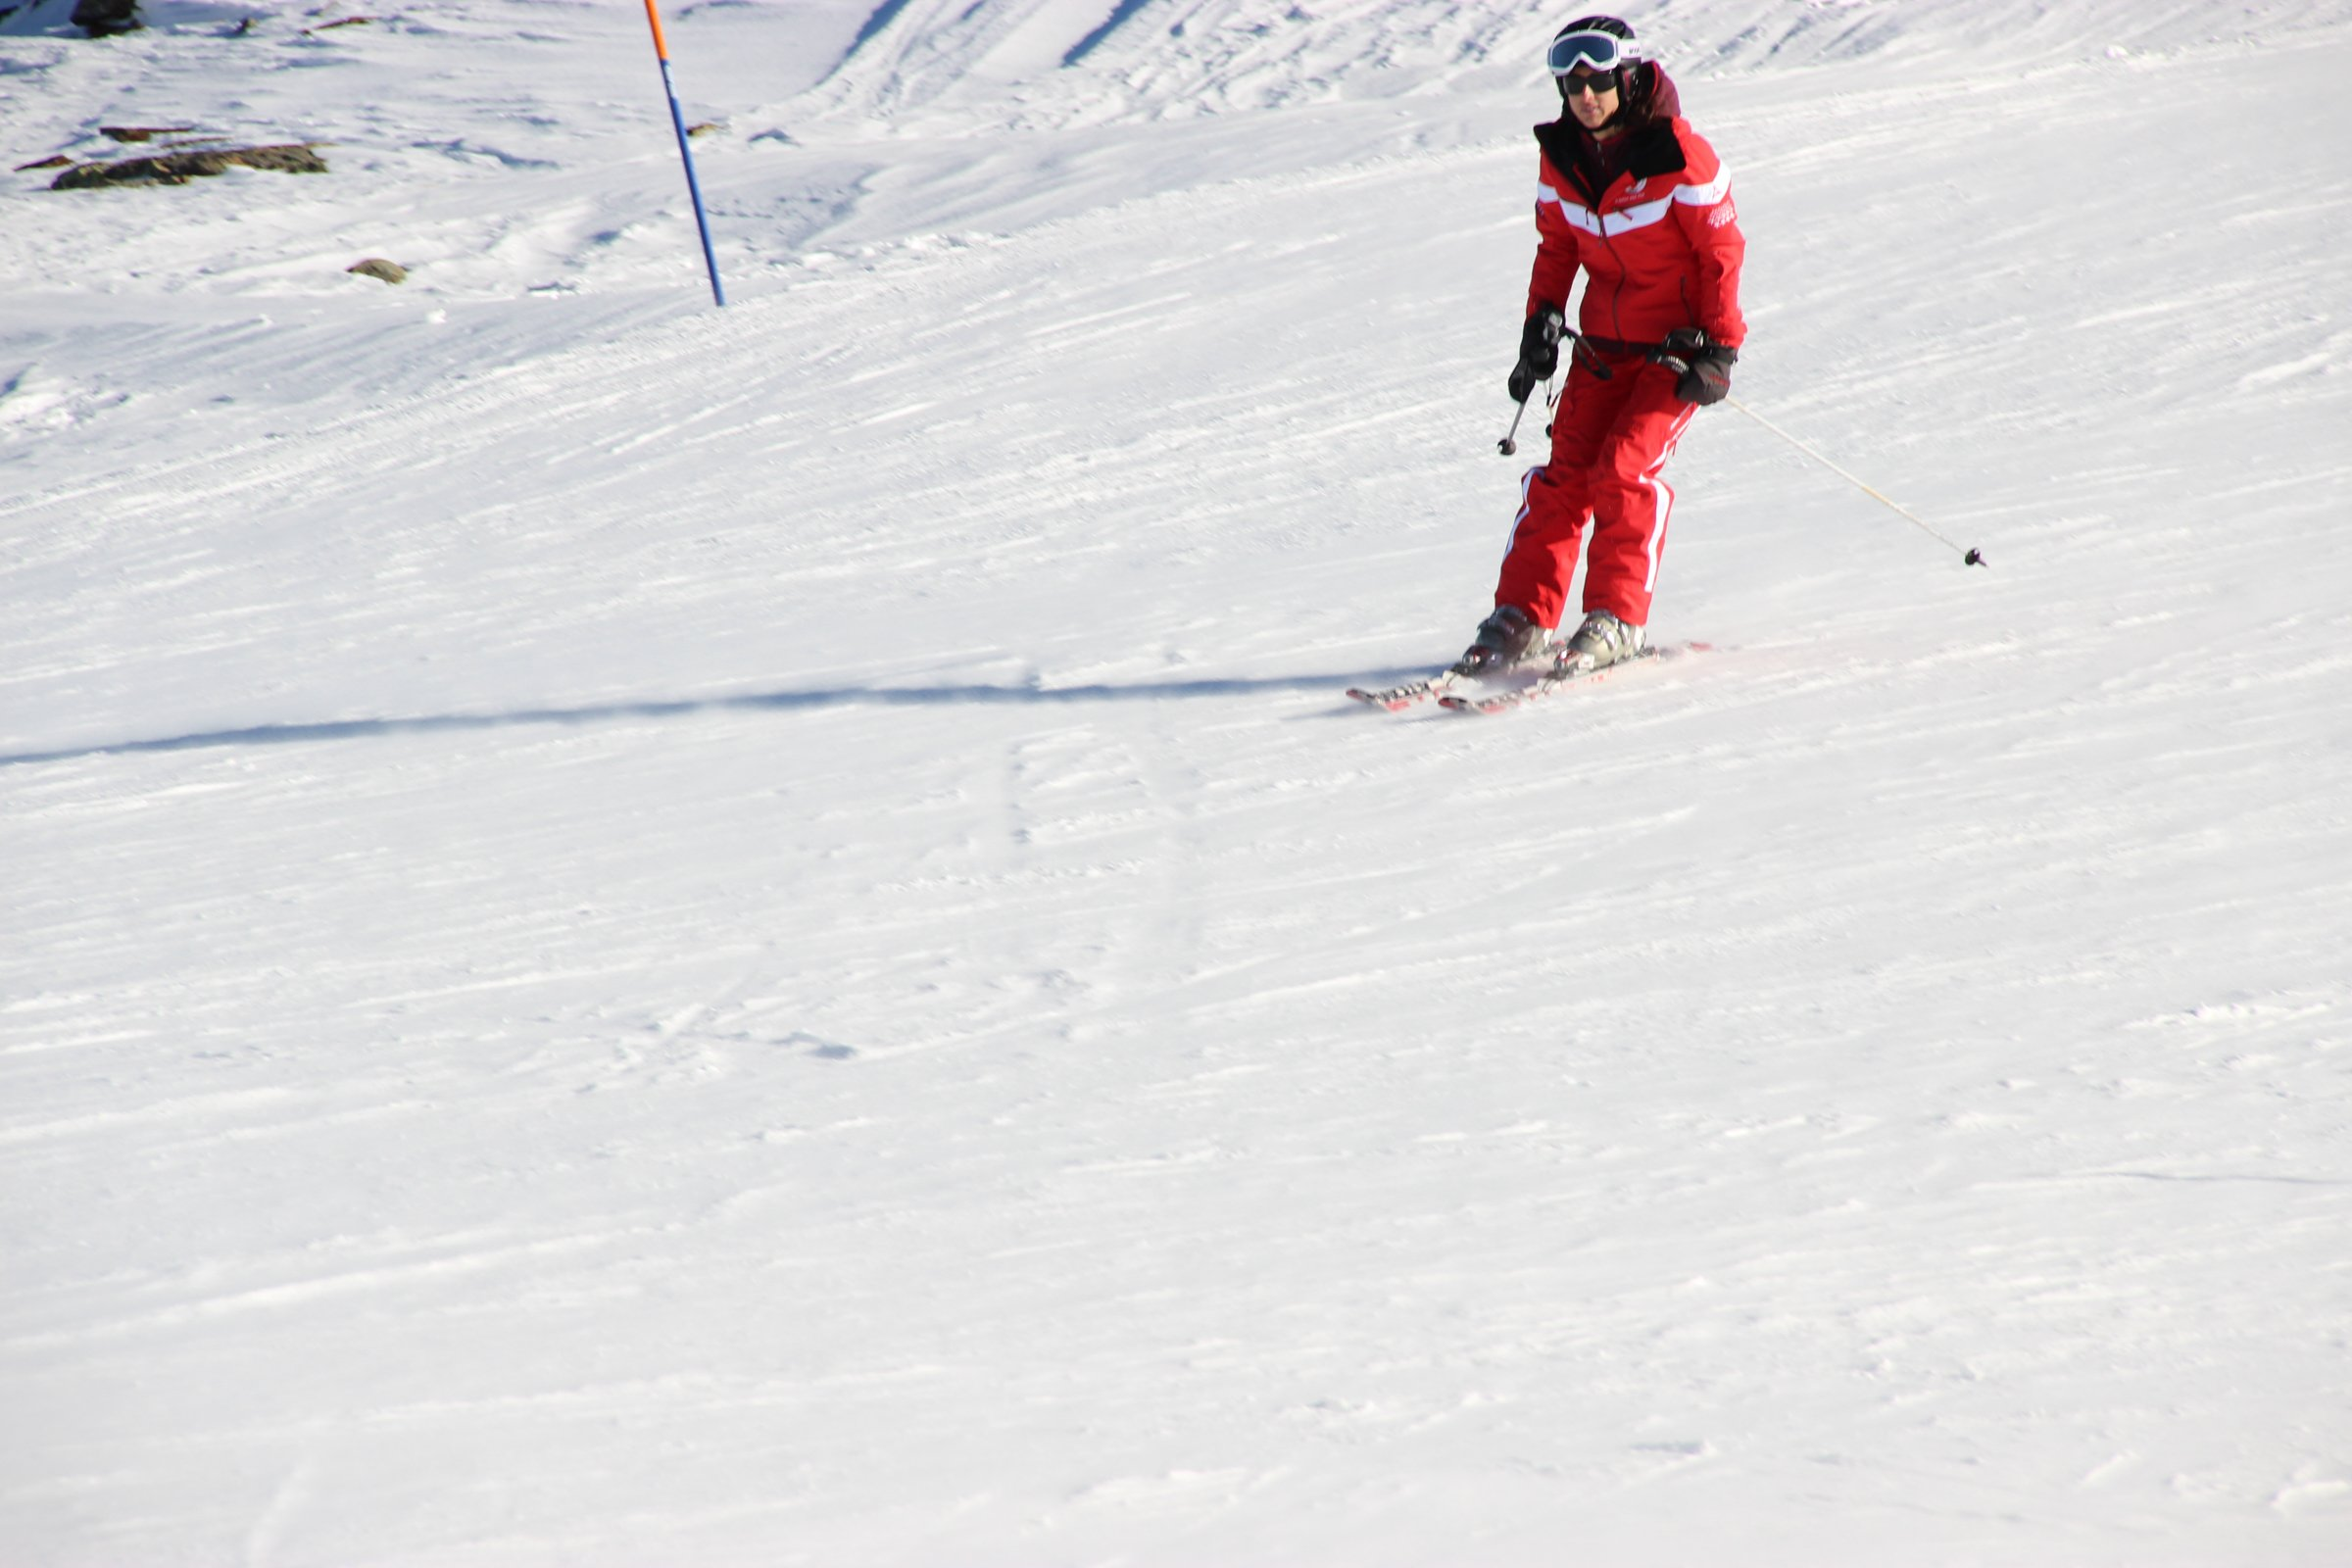 Skier Moving Downward On Snow